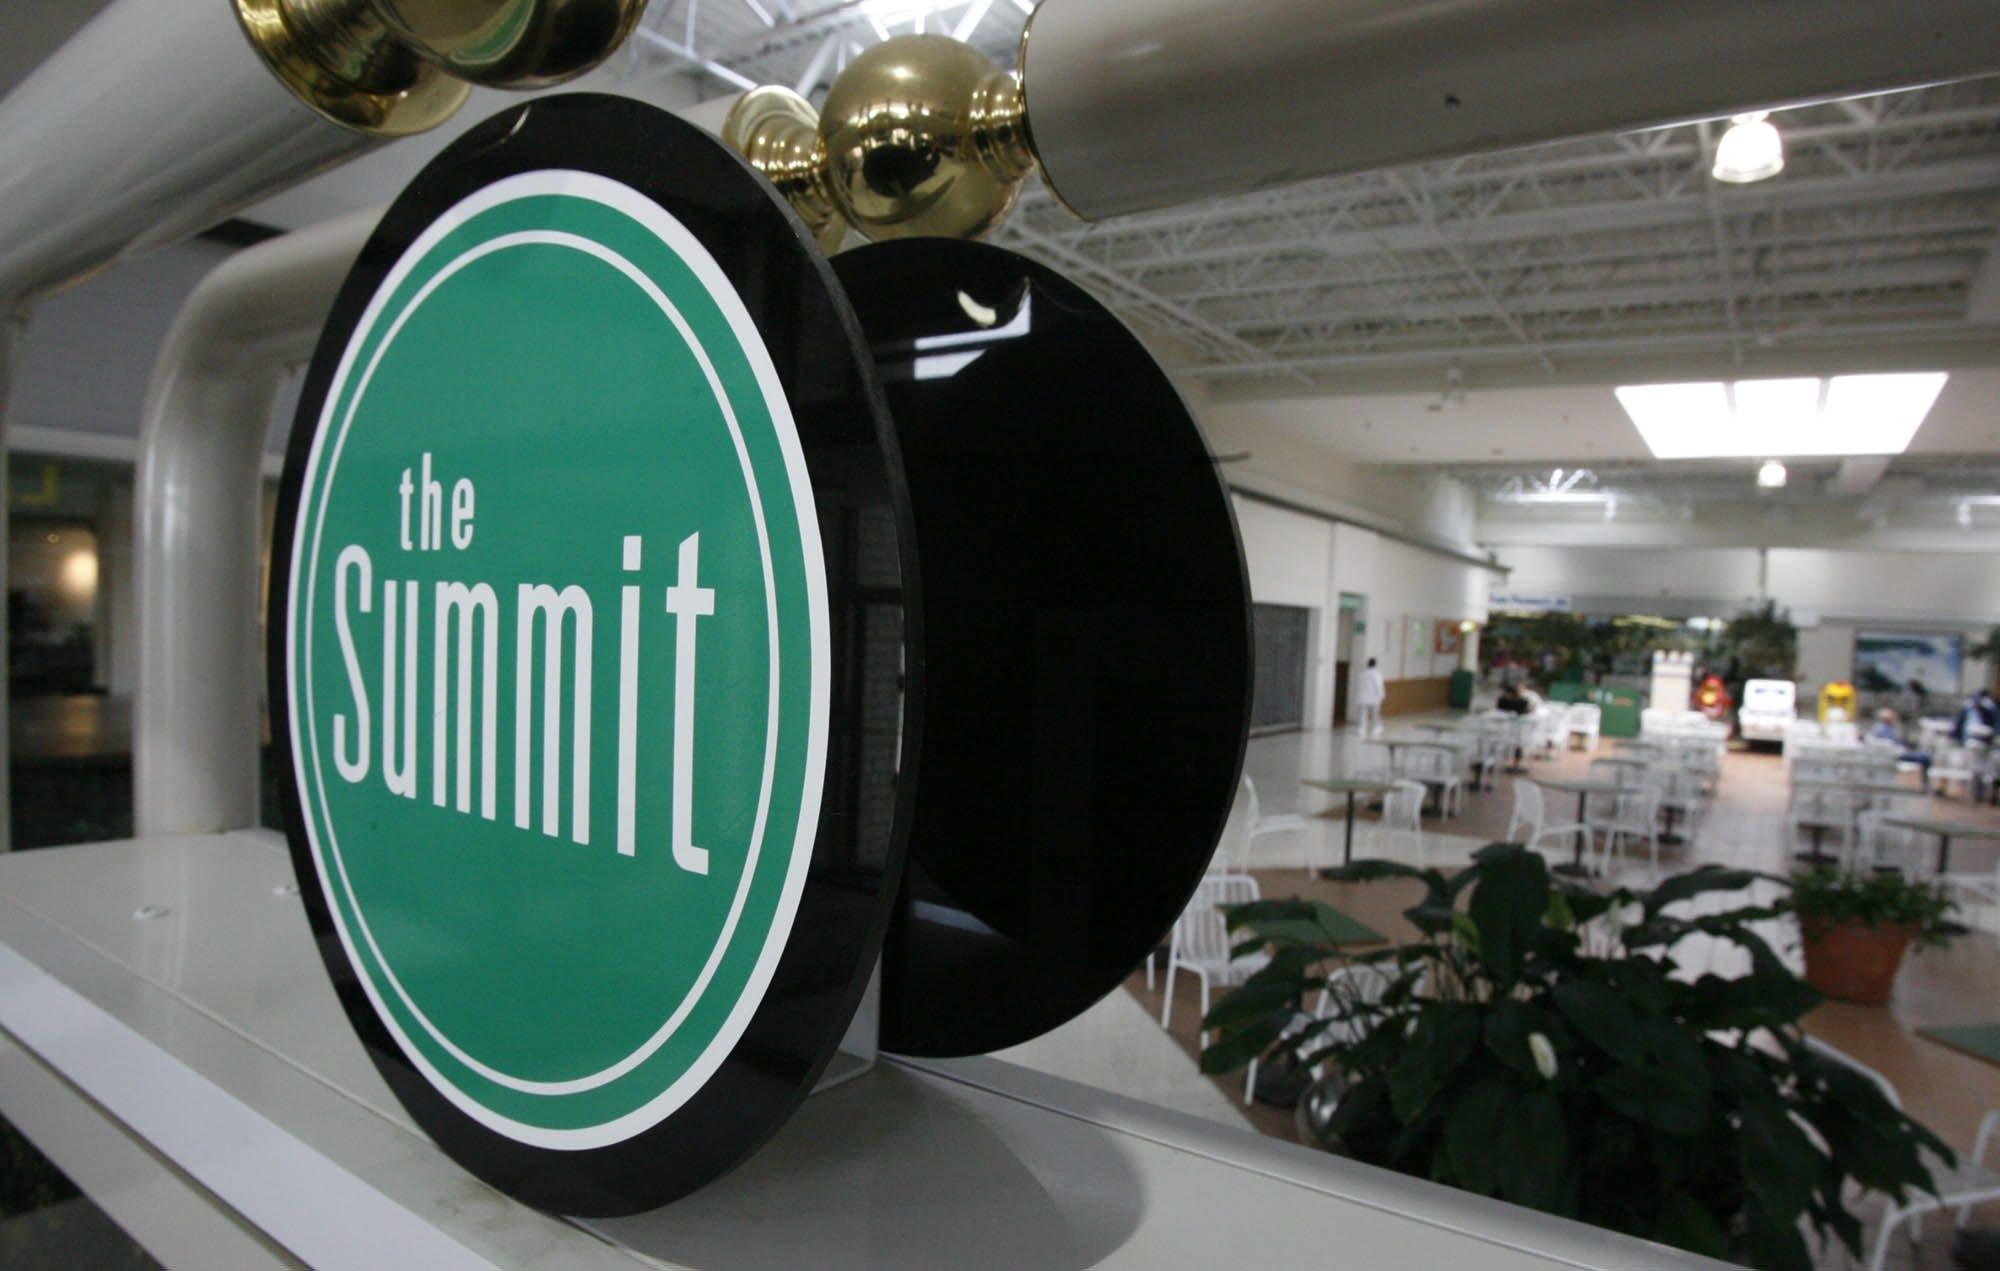 Owner of largely vacant Summit shopping plaza in Wheatfield aims to close sale in next 30 days.